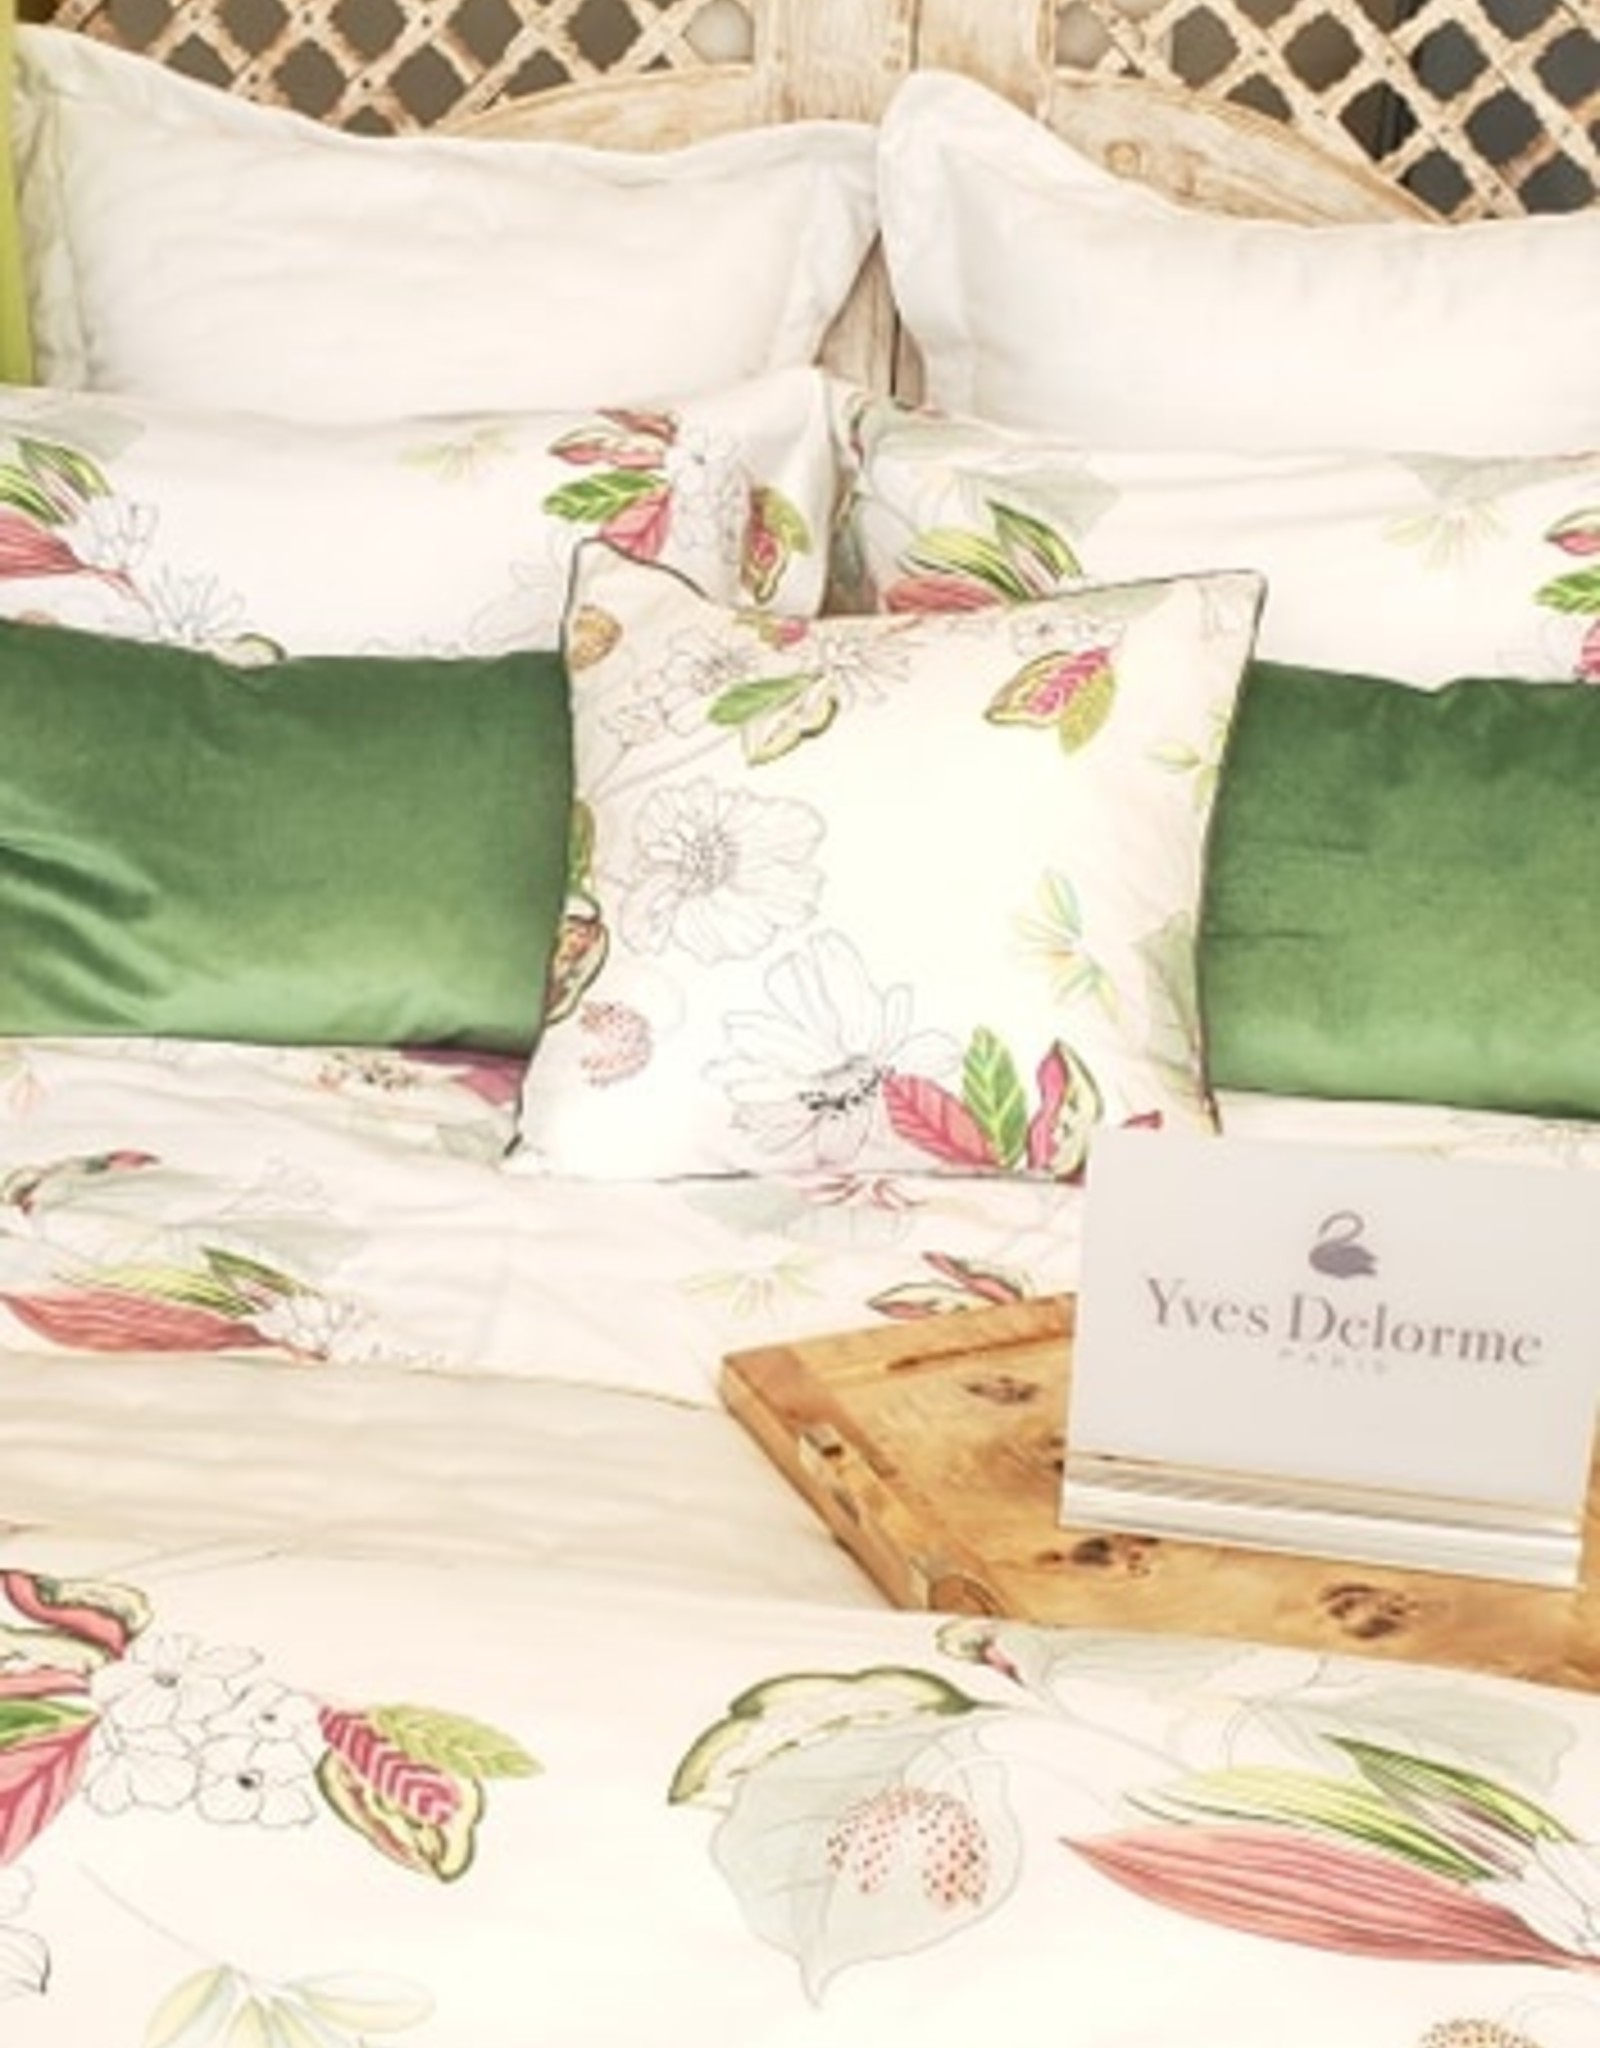 Yves Delorme Riviera Duvet Cover